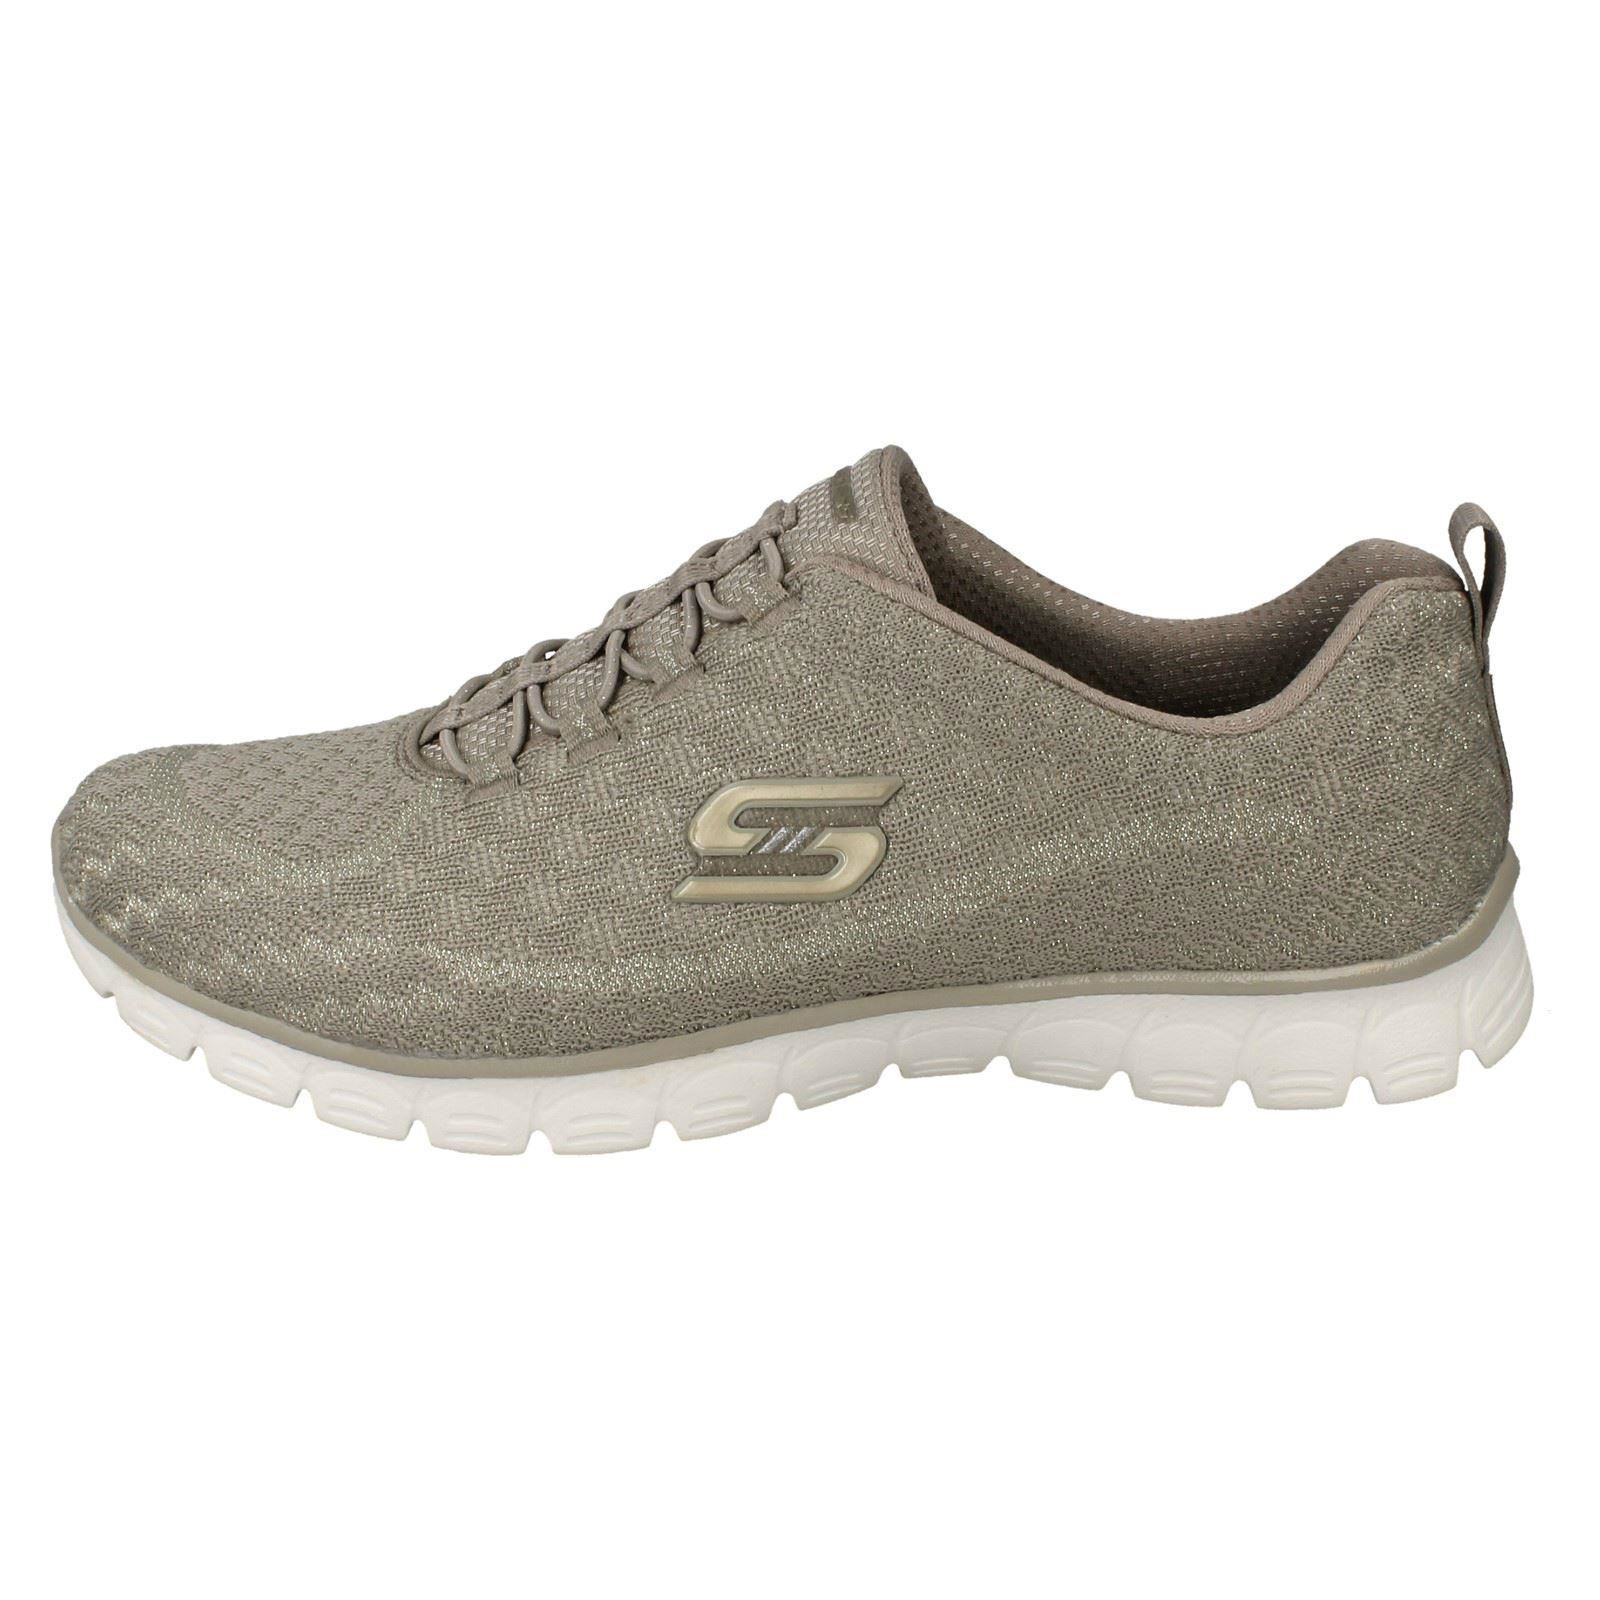 Ladies Air Cooled Memory Foam Skechers Estrella 23412 Style  5960f6b1f6